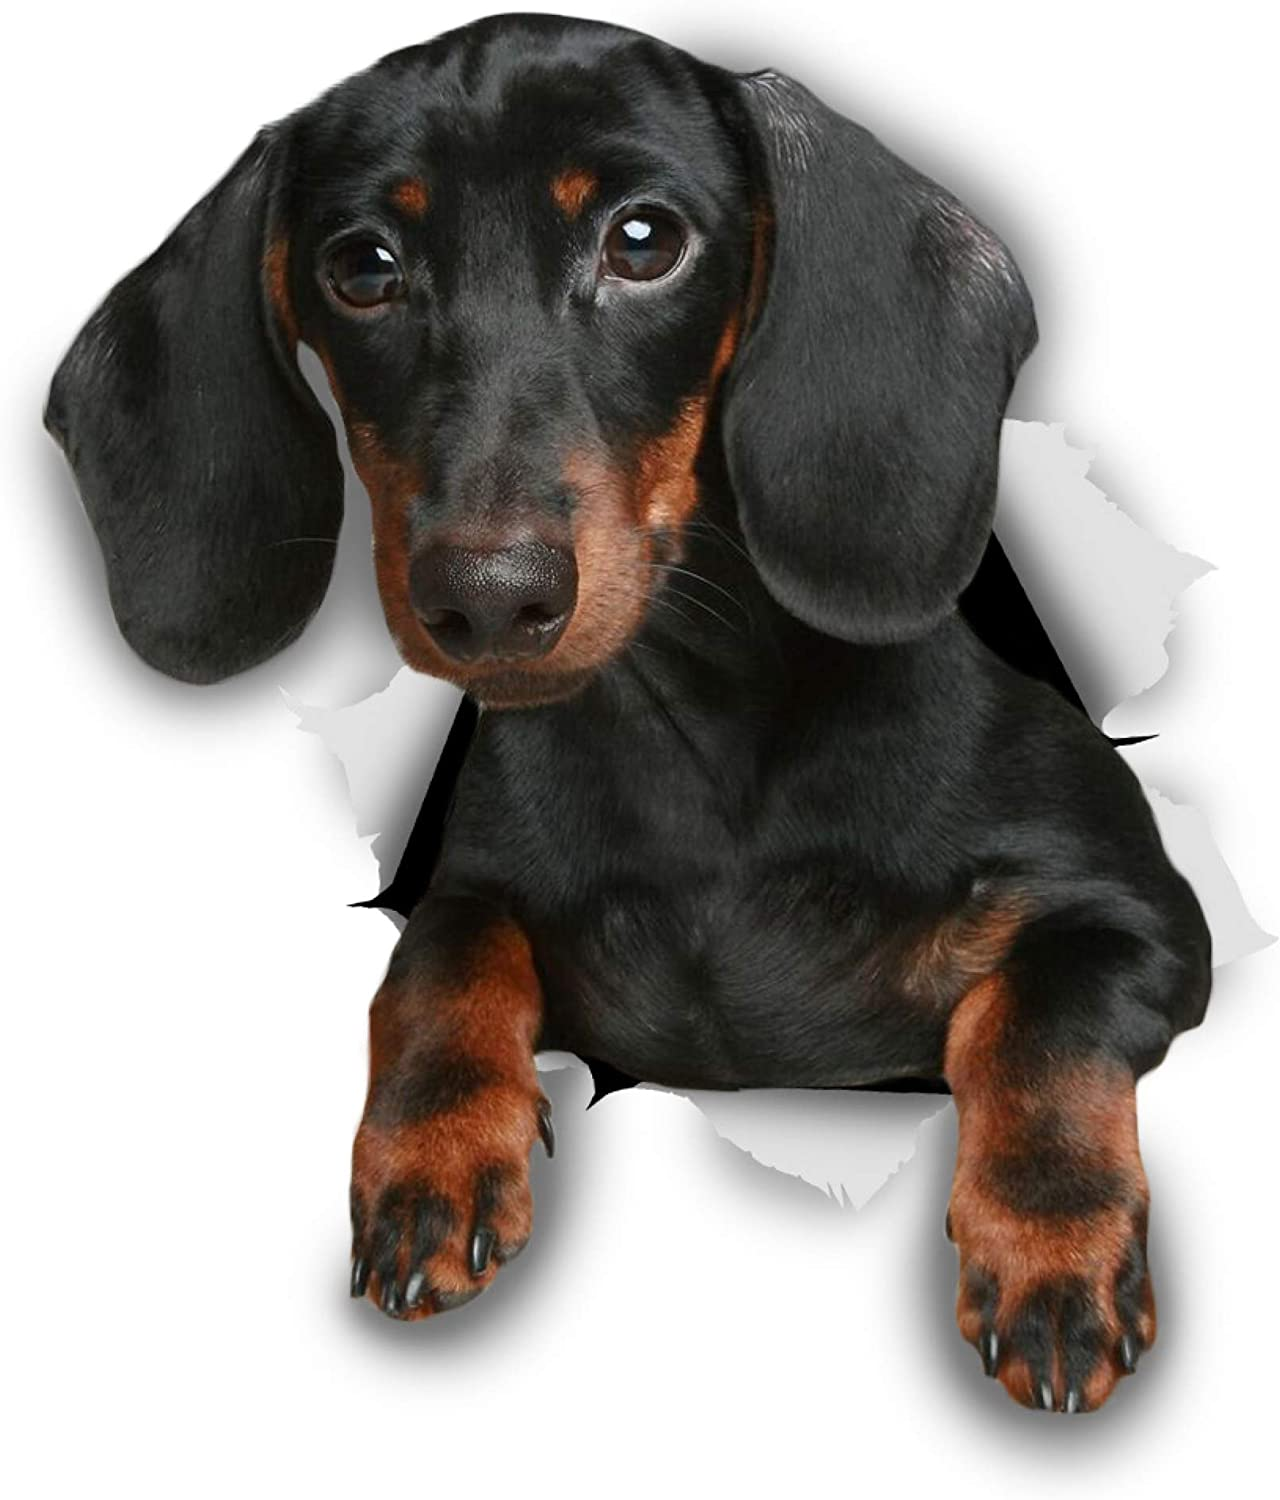 Winston & Bear 3D Dog Stickers - 2 Pack - Black Dachshund Sausage Dog Decals for Wall, Fridge, Toilet and More - Black and Brown Dachshund Decor - Retail Packaged Dachshund Stickers